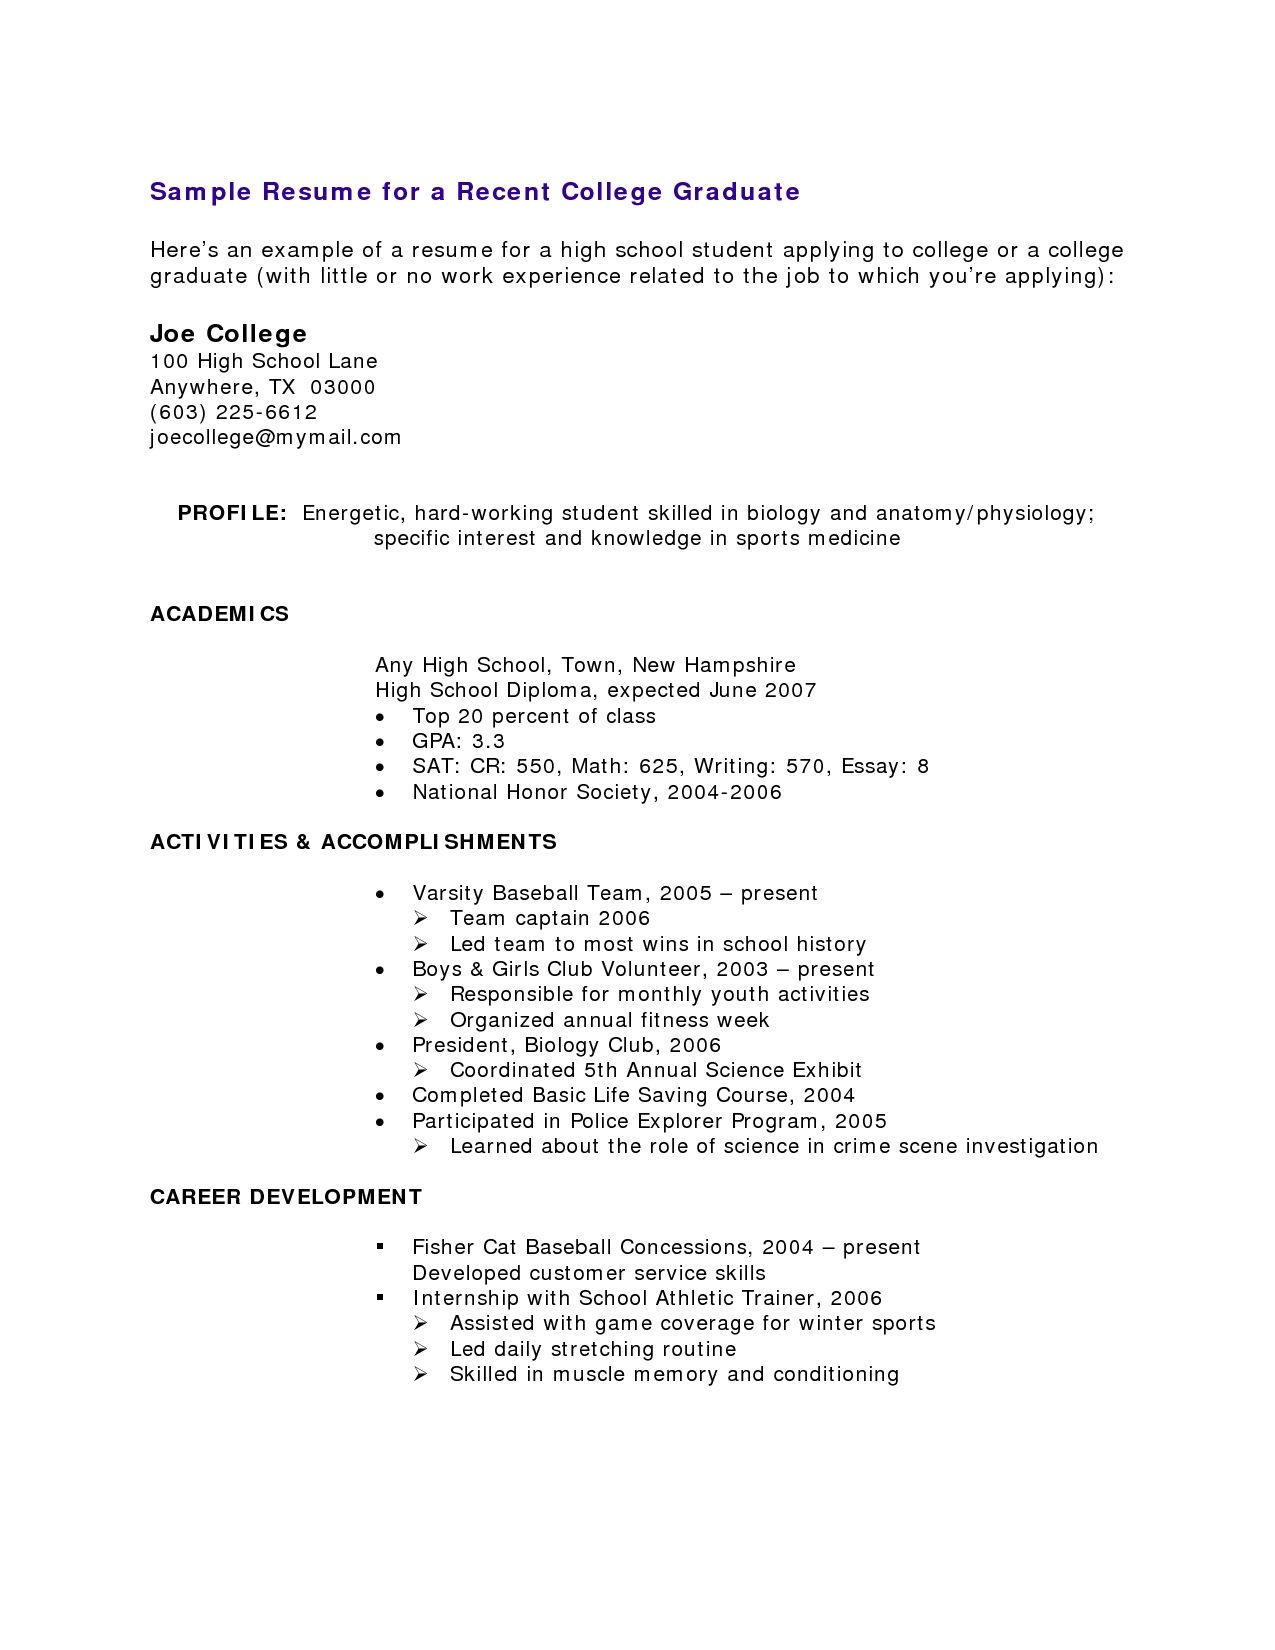 High School Student Resume With No Work Experience Resume Examples – Sample Resume High School Student No Work Experience